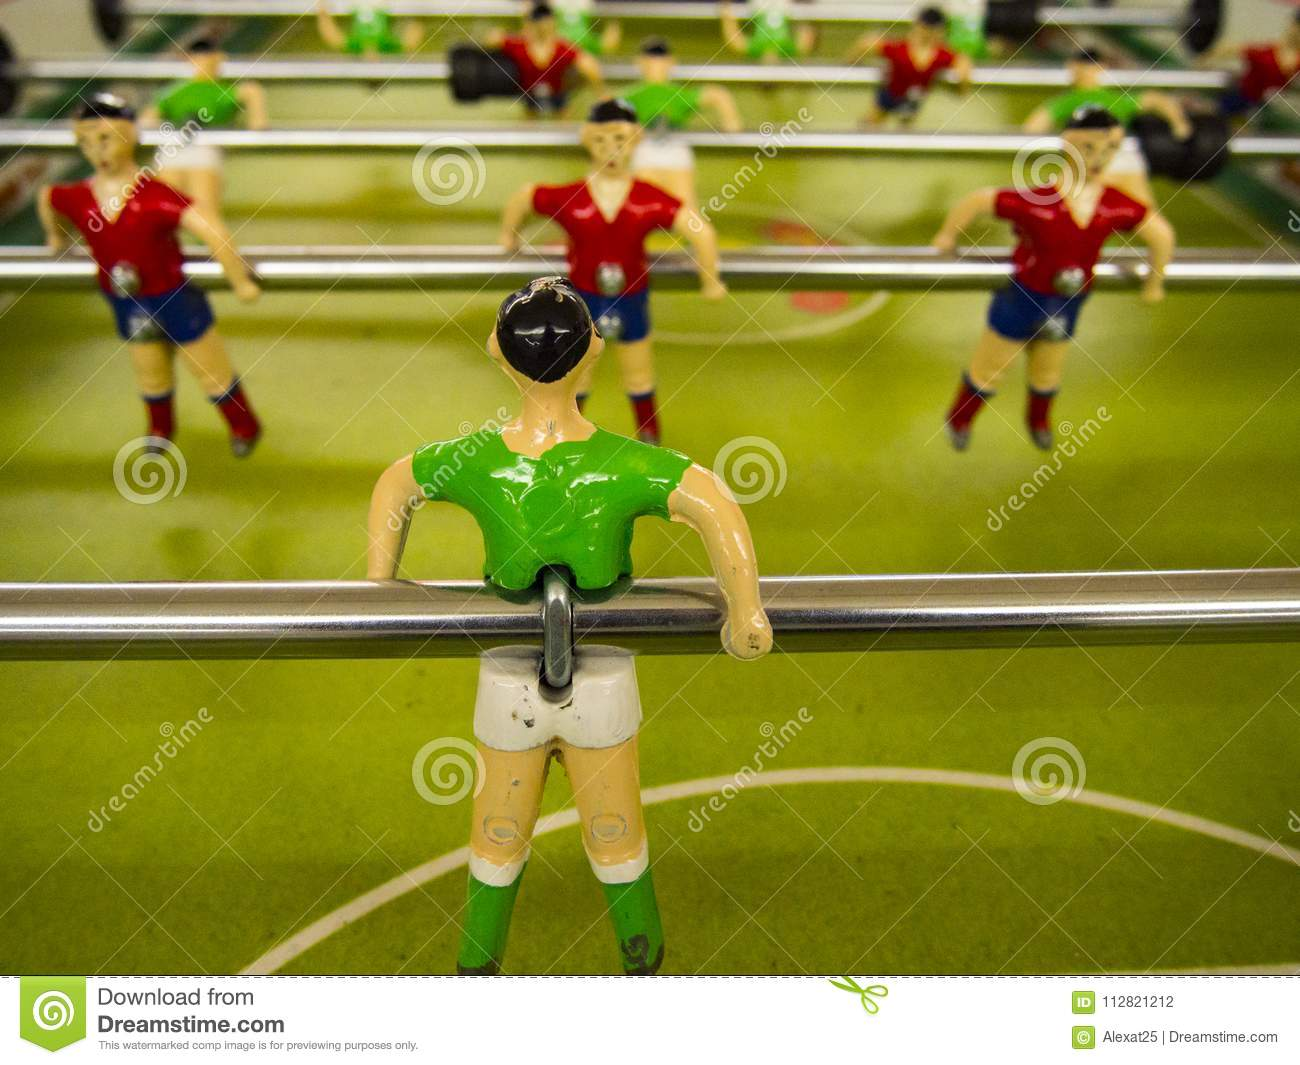 Players of the foosball